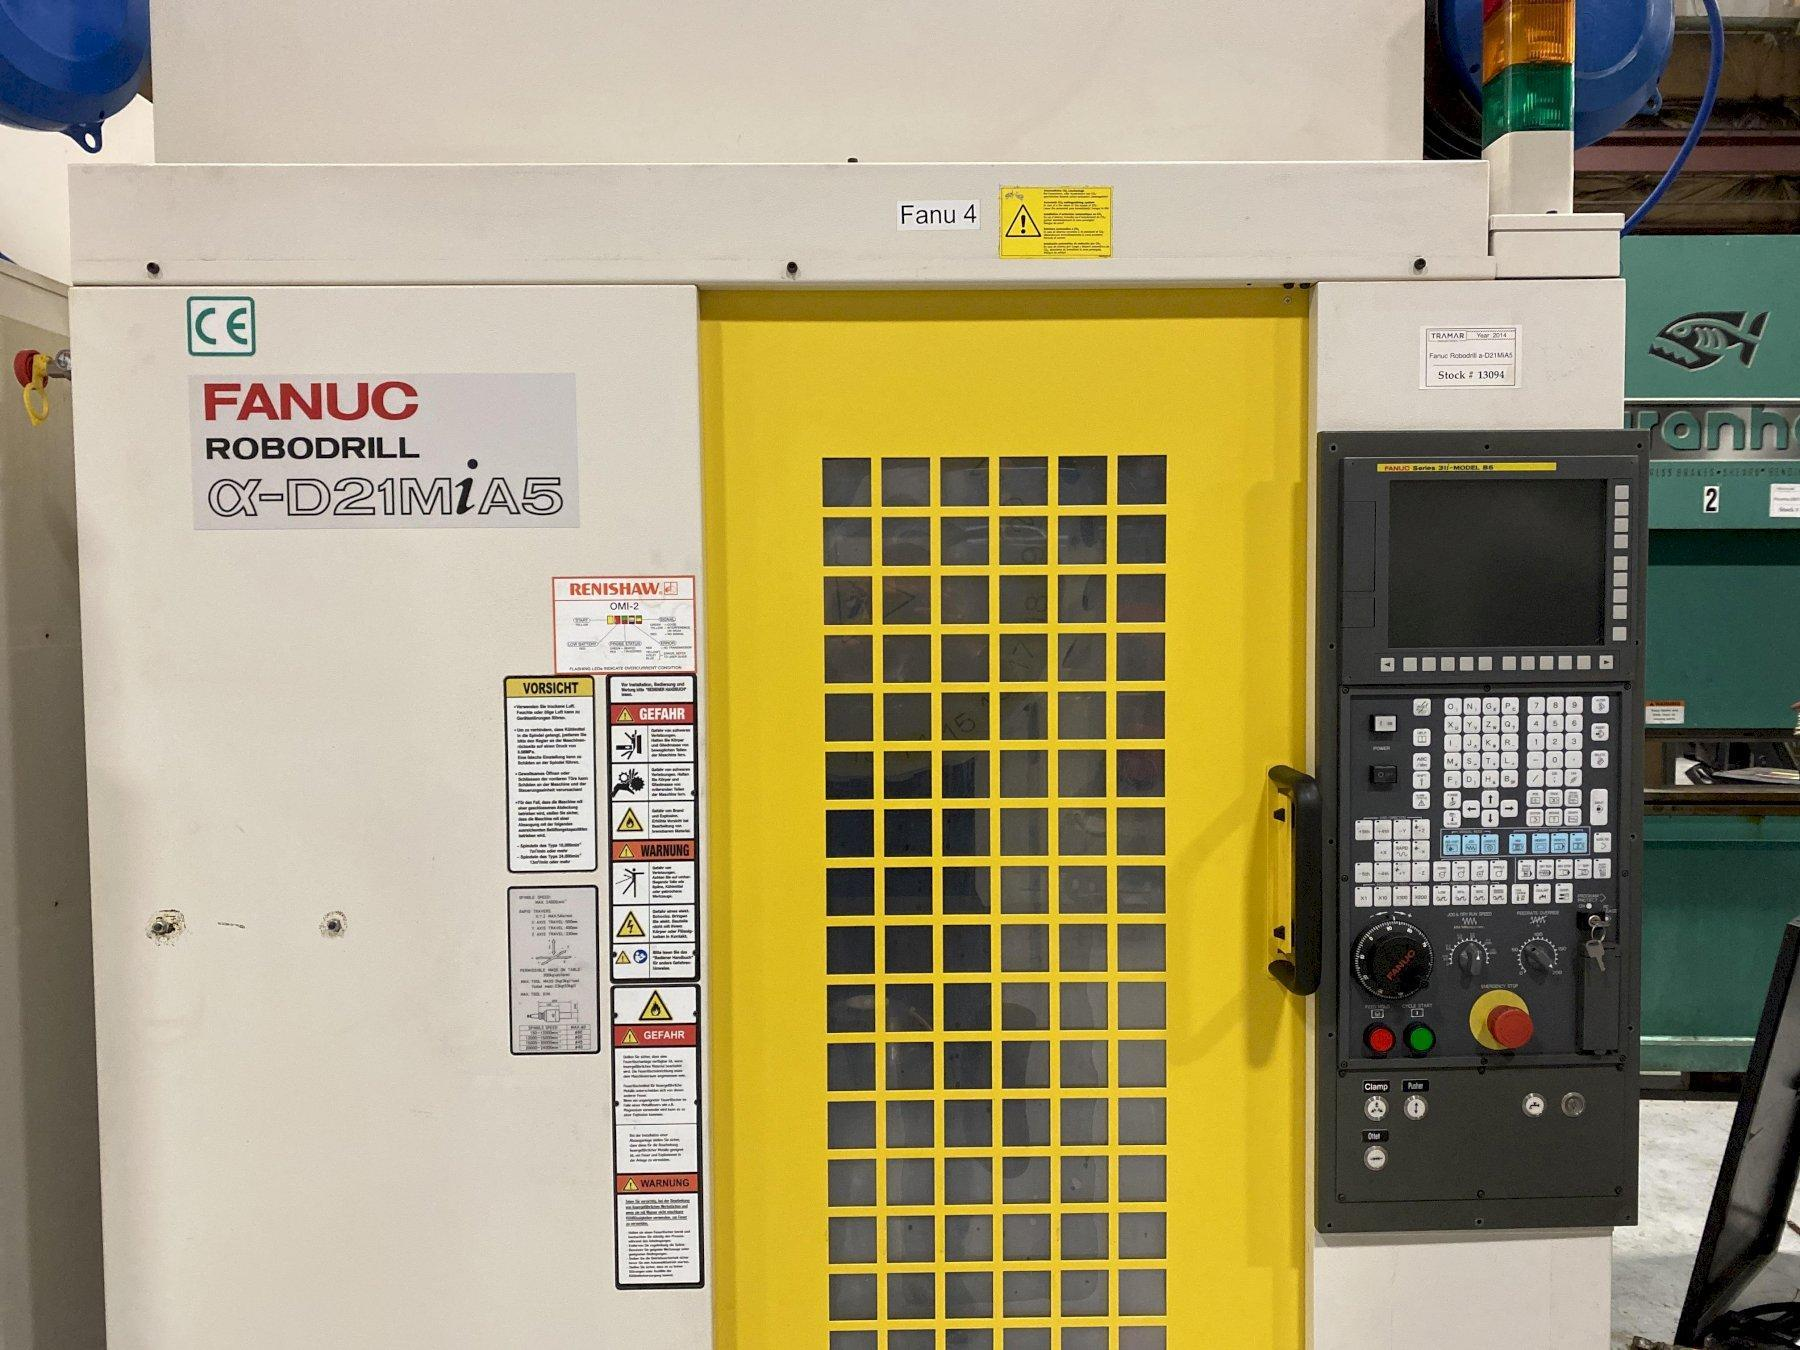 2014 FANUC Robodrill a-D21MiA5 - 5 Axis - Vertical Machining Center